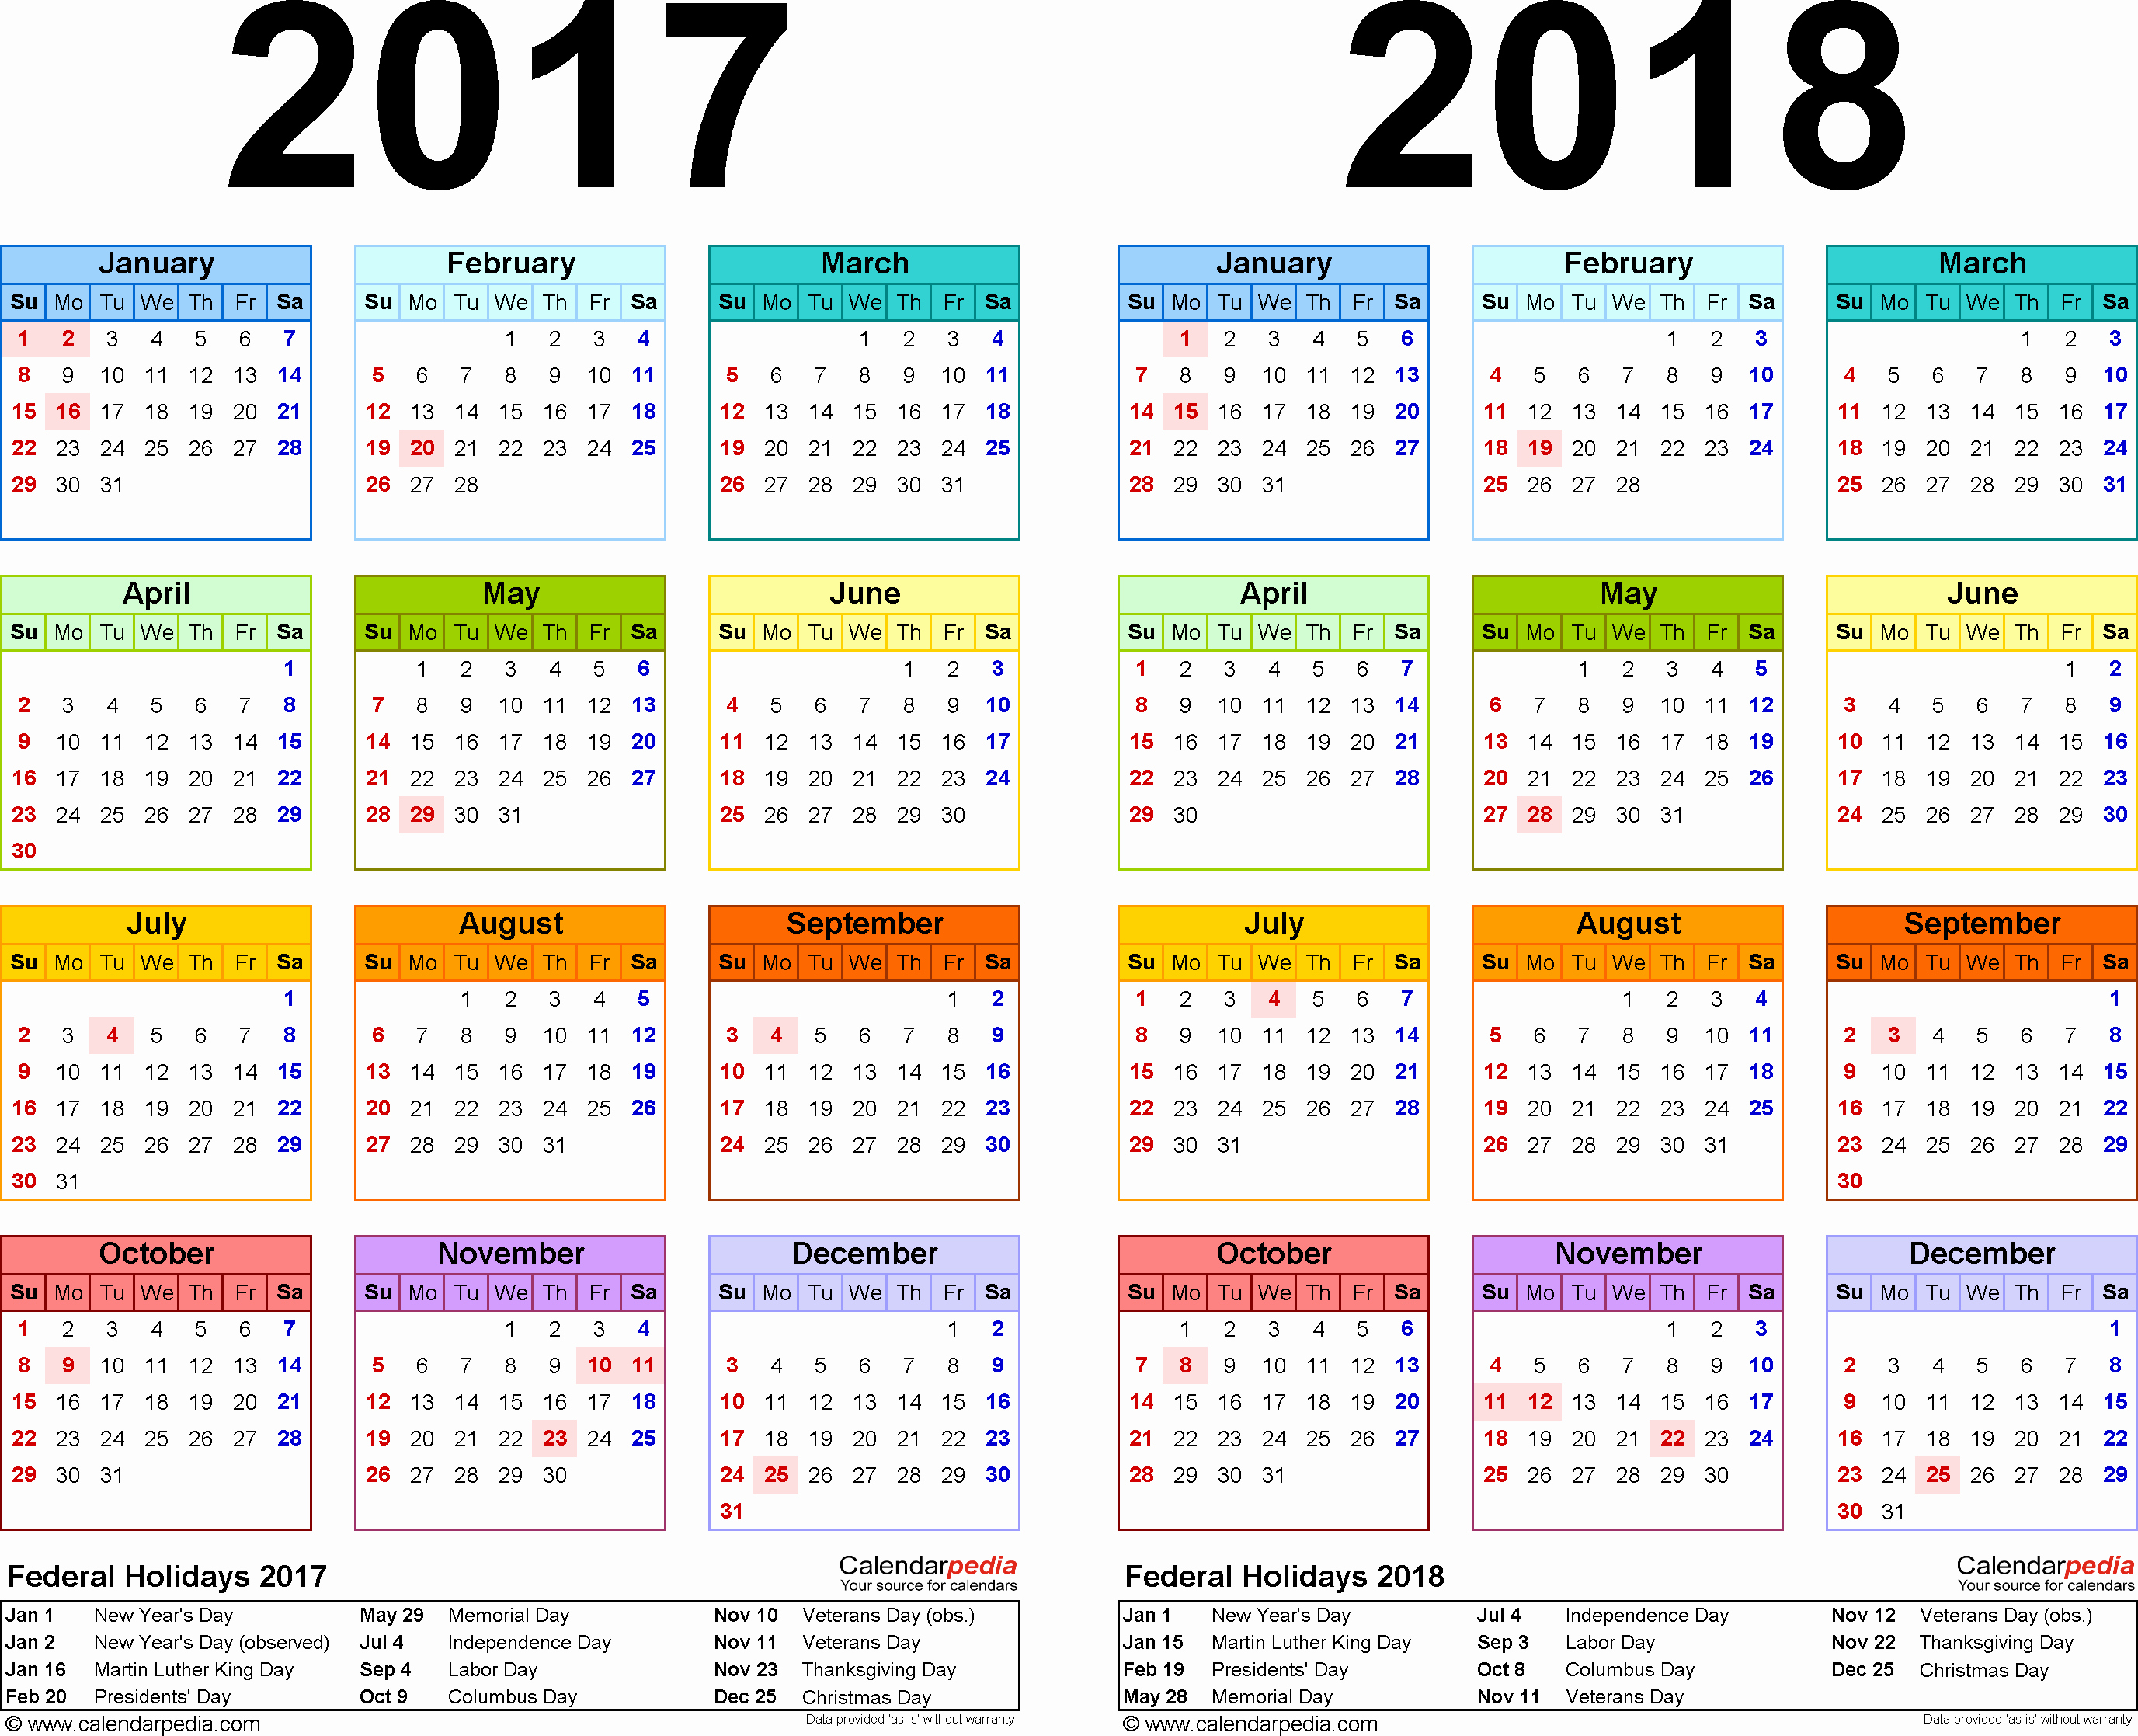 Full Year Calendar 2017 Printable Fresh 2017 2018 Calendar Free Printable Two Year Pdf Calendars